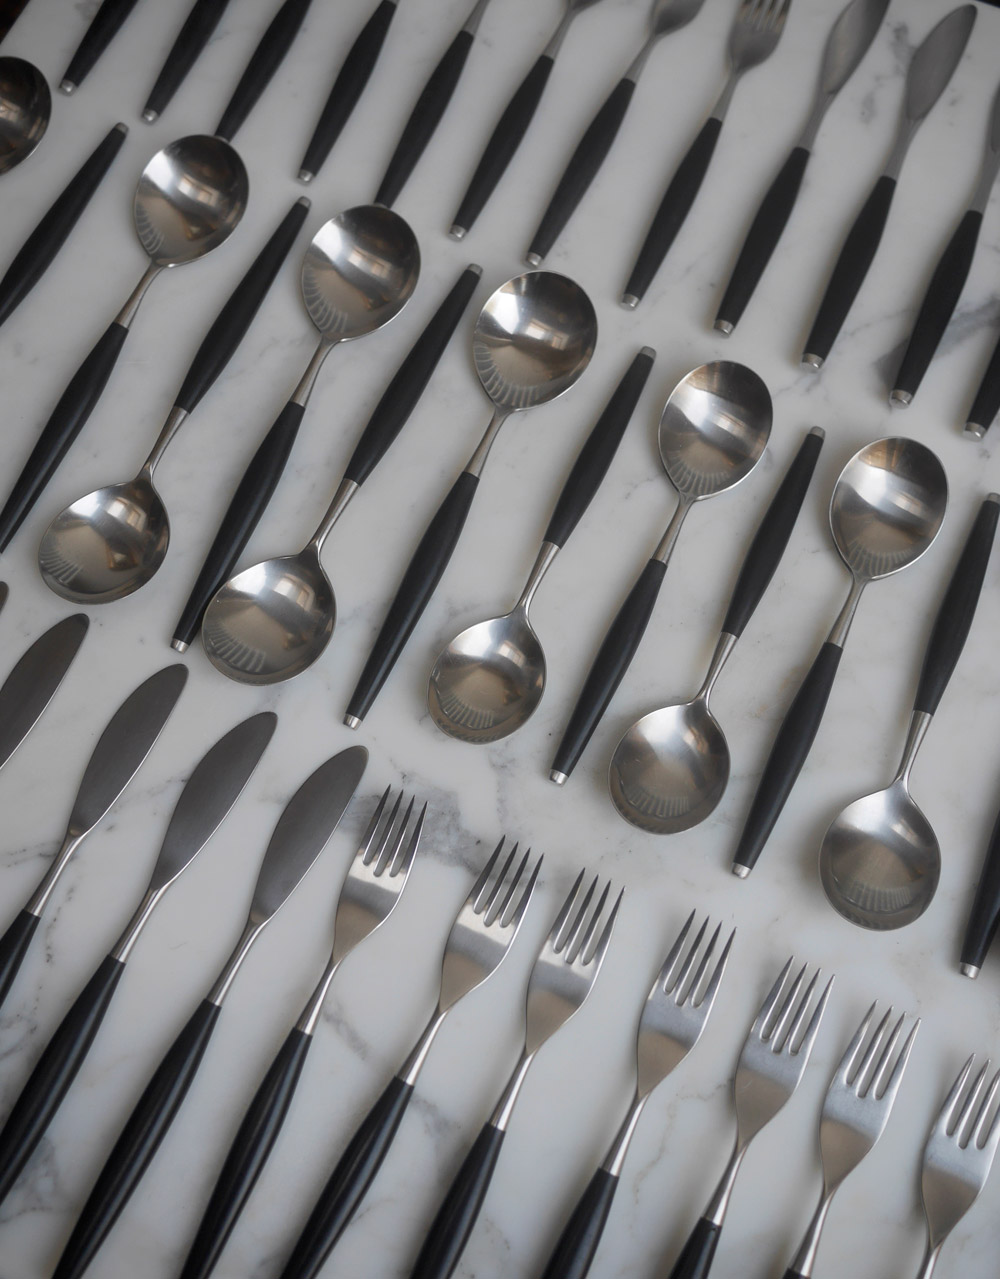 1960s Safir cutlery by Wallin Brothers, Sweden